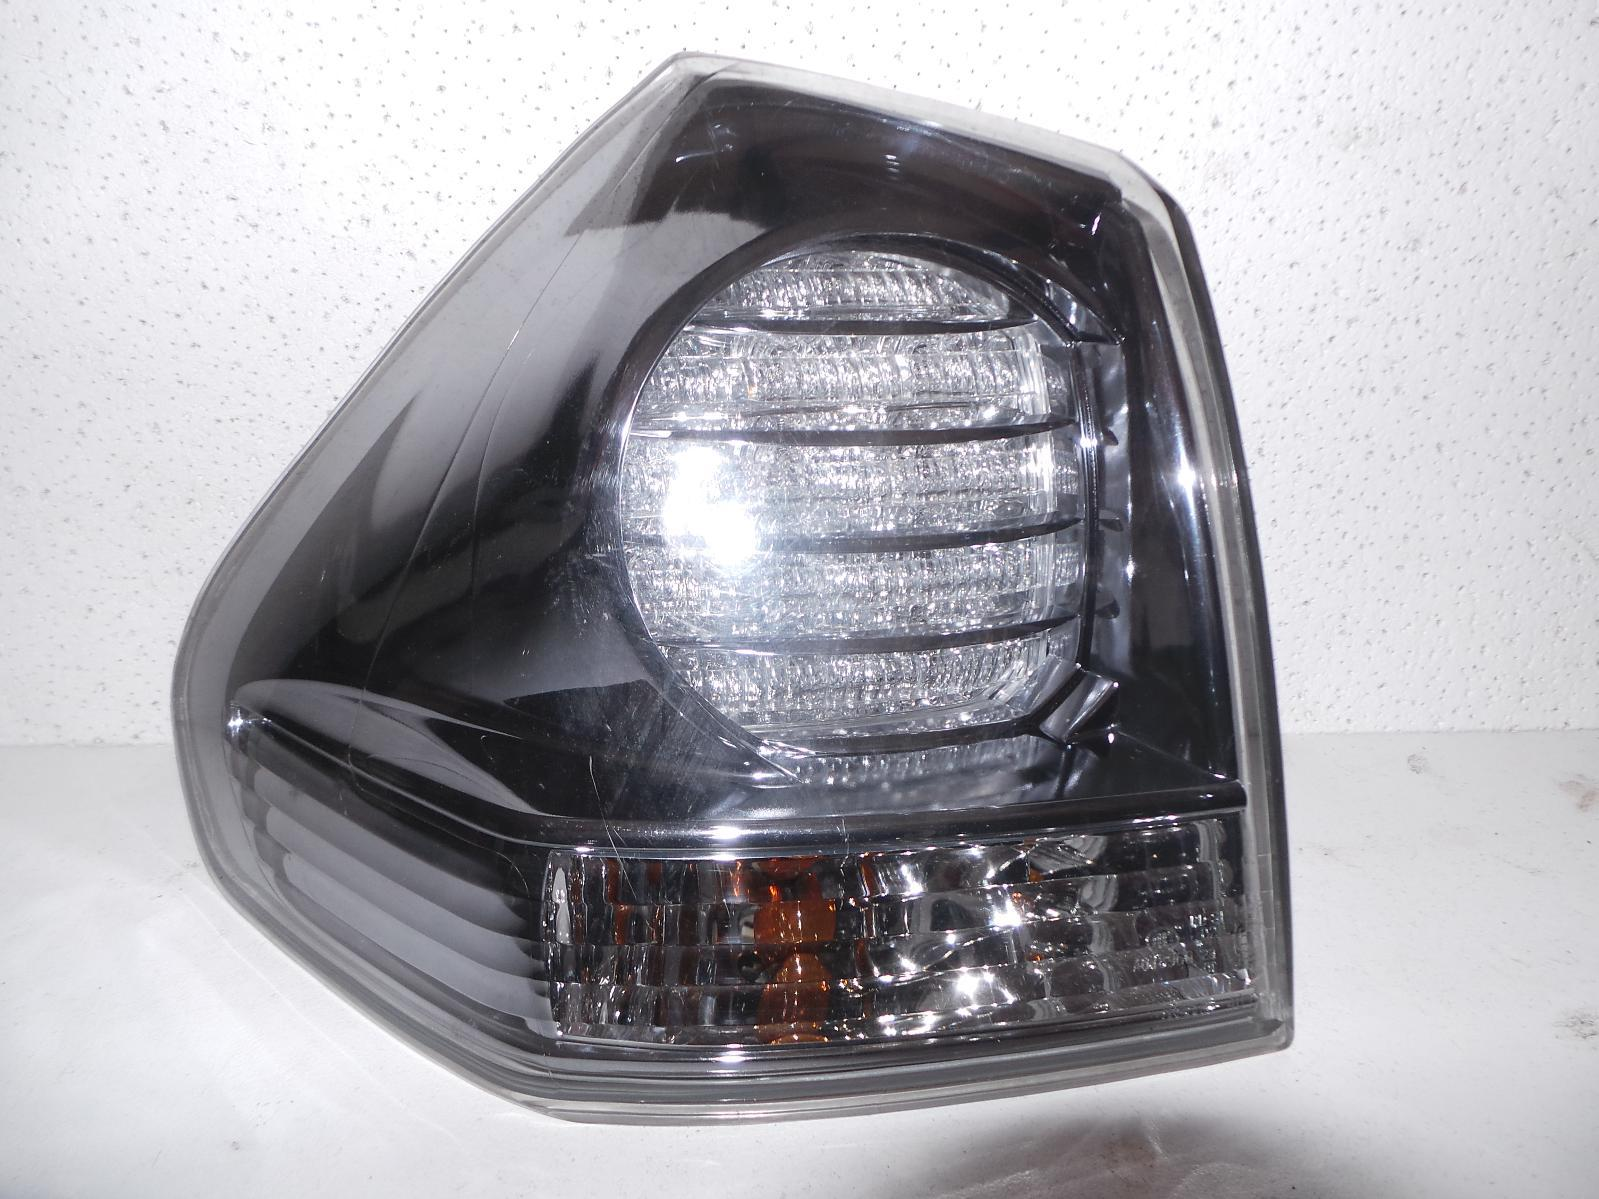 LEXUS RX SERIES, Left Taillight, RX400H, MHU3#, IN BODY, 03/06-02/09